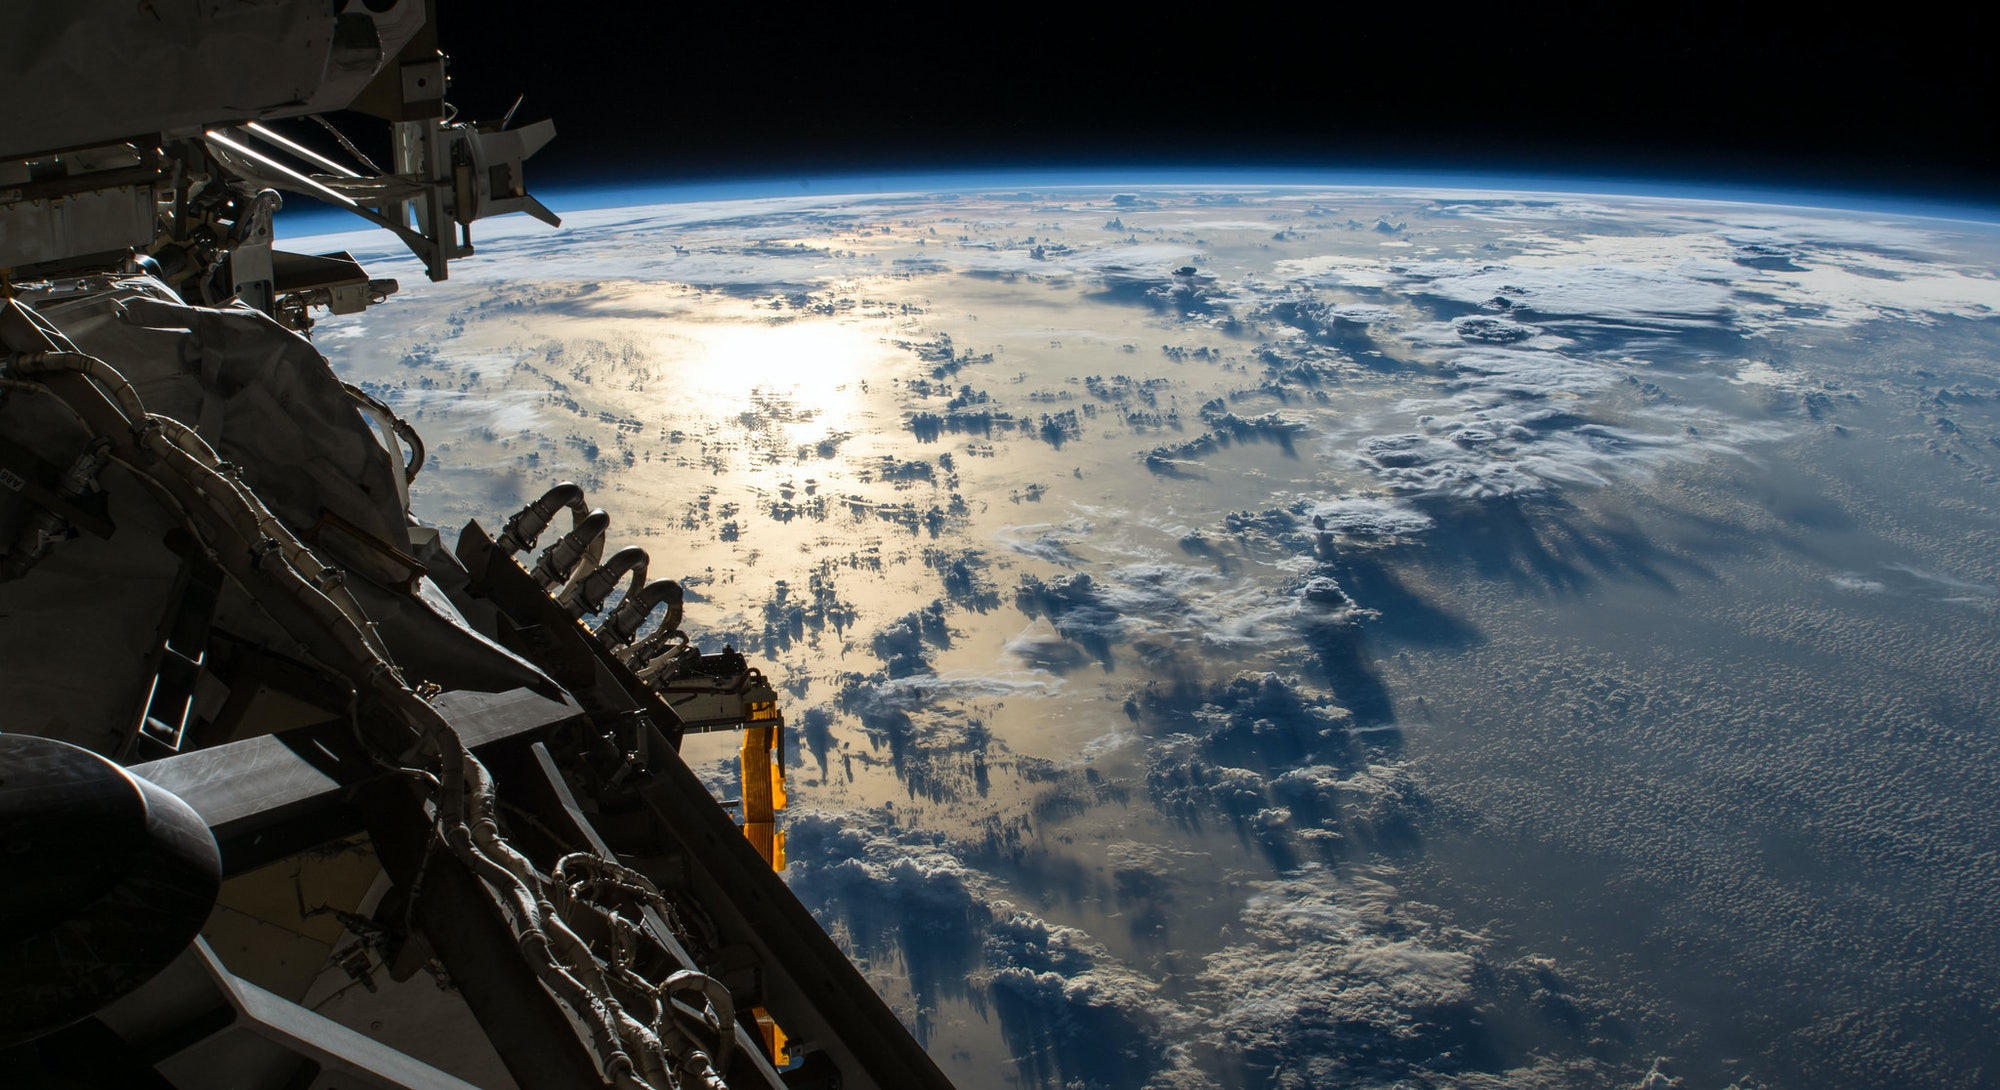 view of earth from international space station in orbit